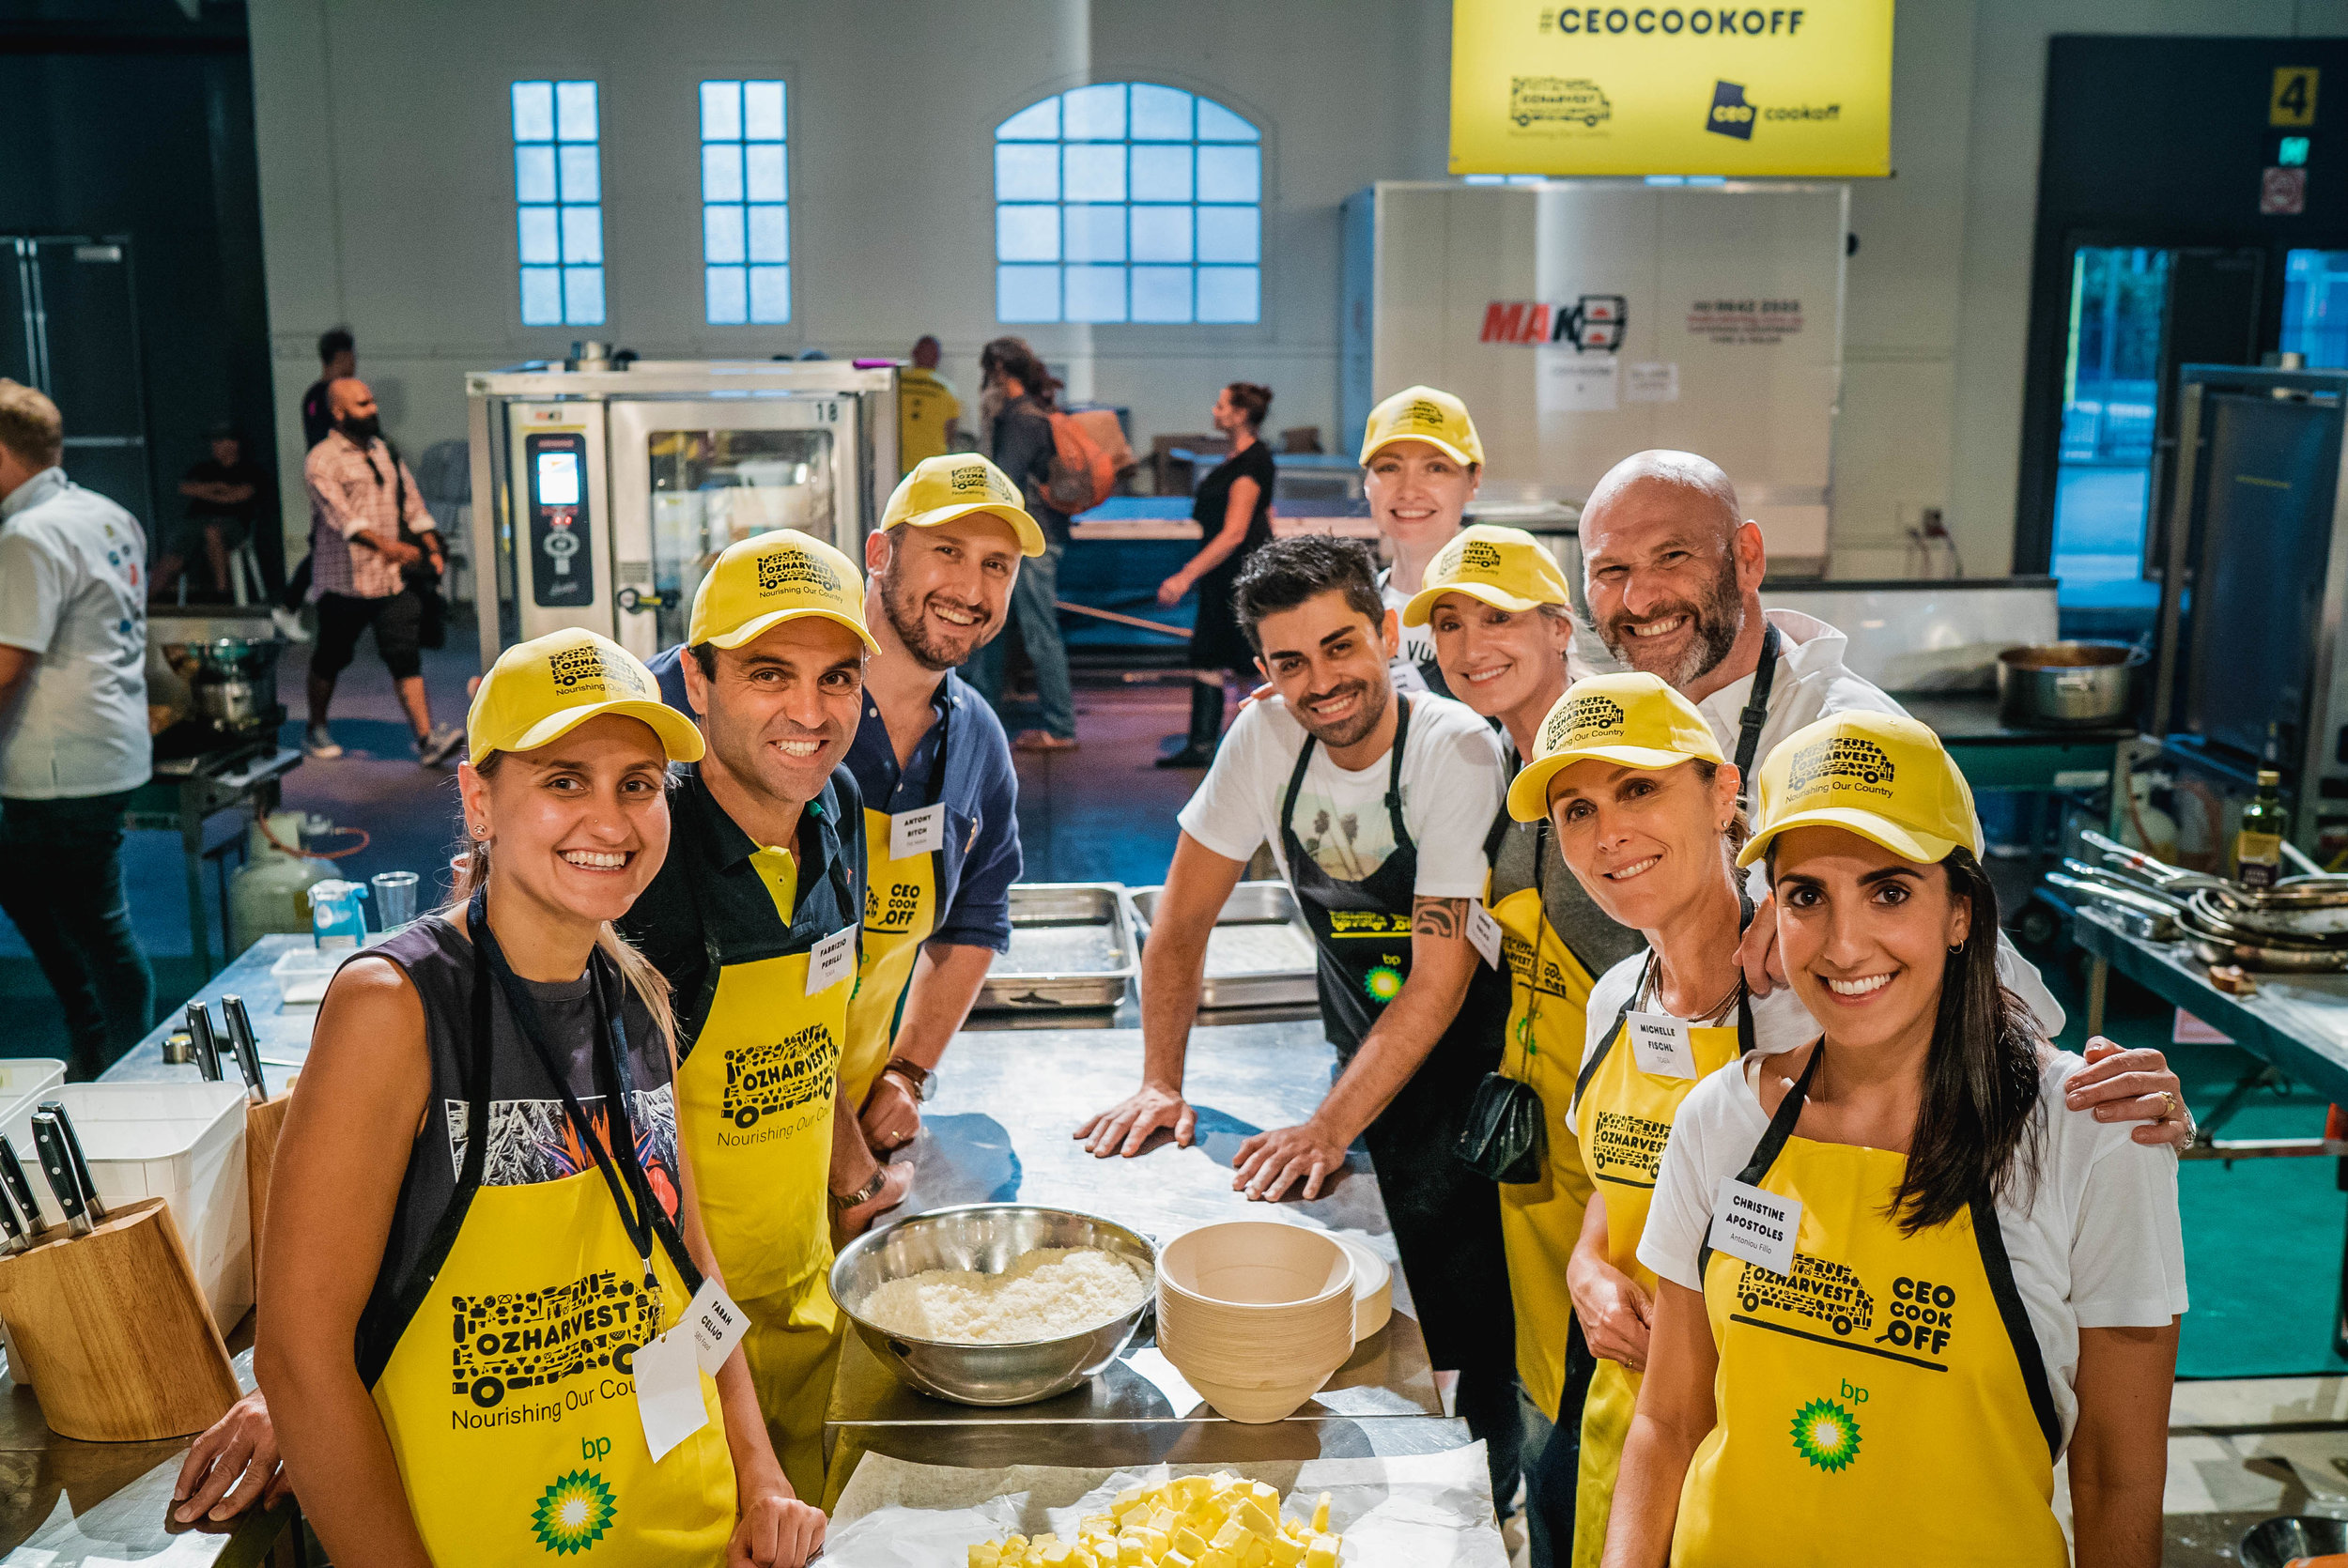 Team Ormeggio, lead by the talented Alessandro Pavoni.